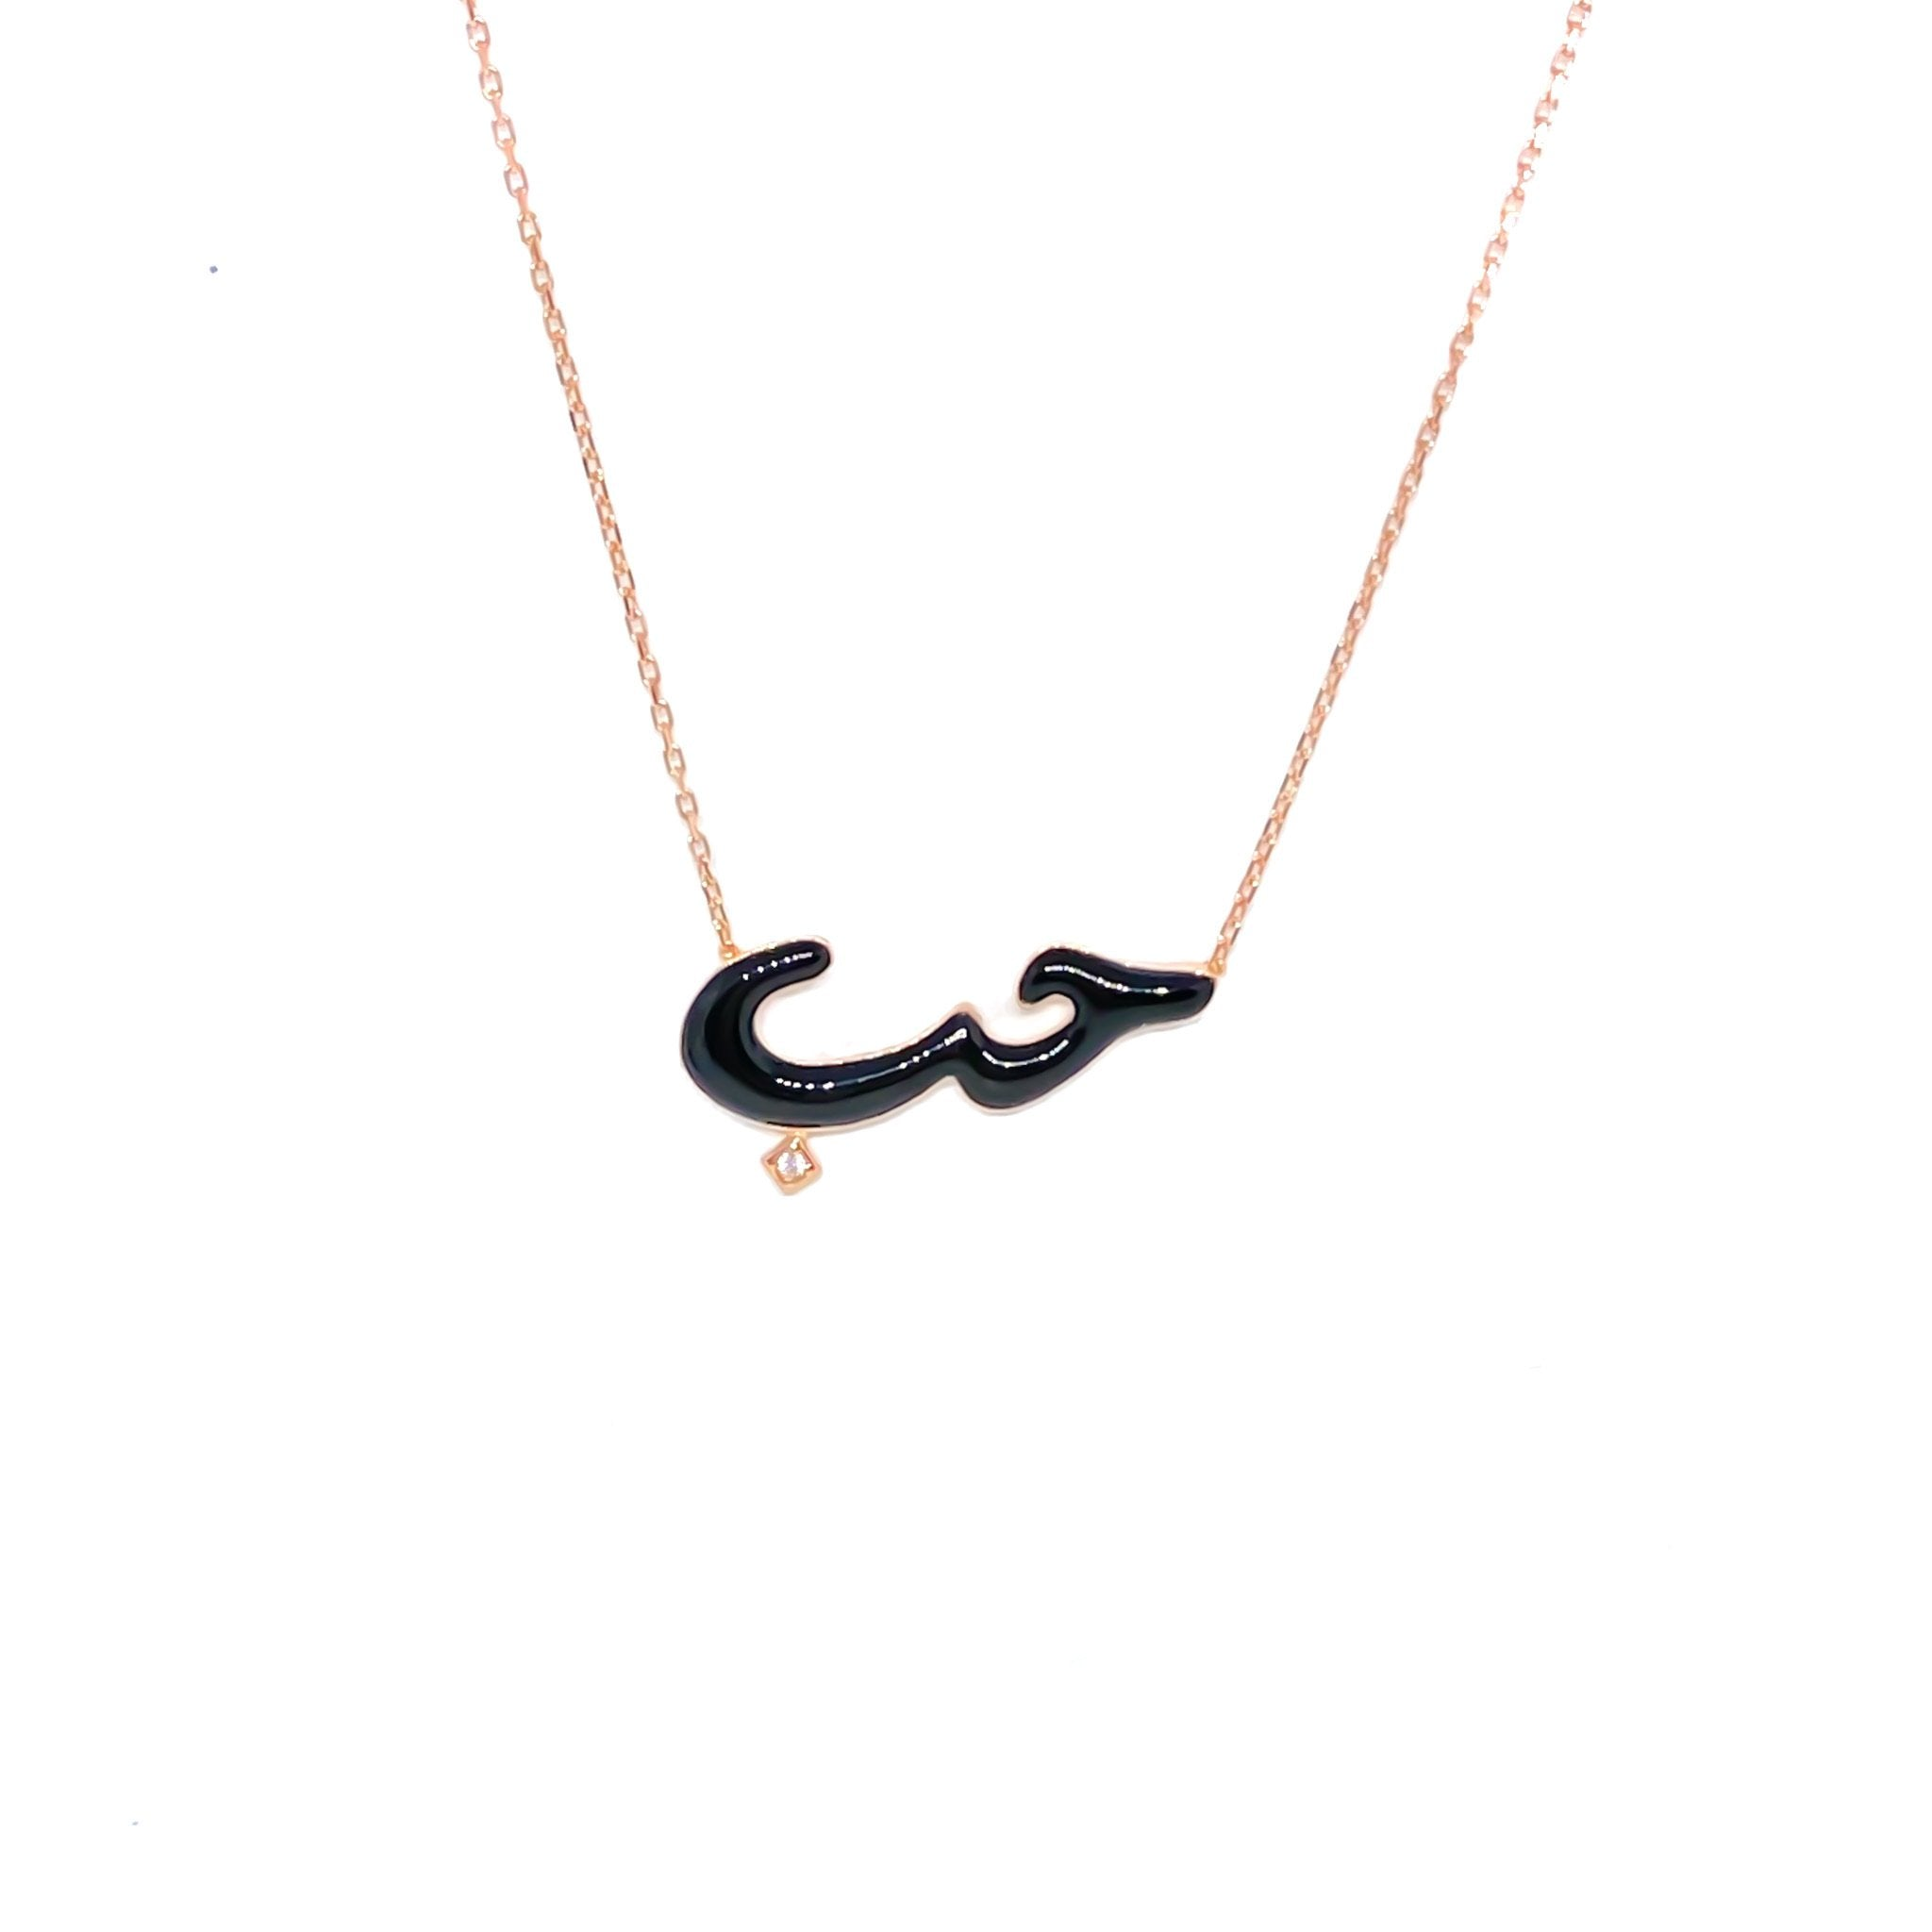 Black Enamel Houb Necklace